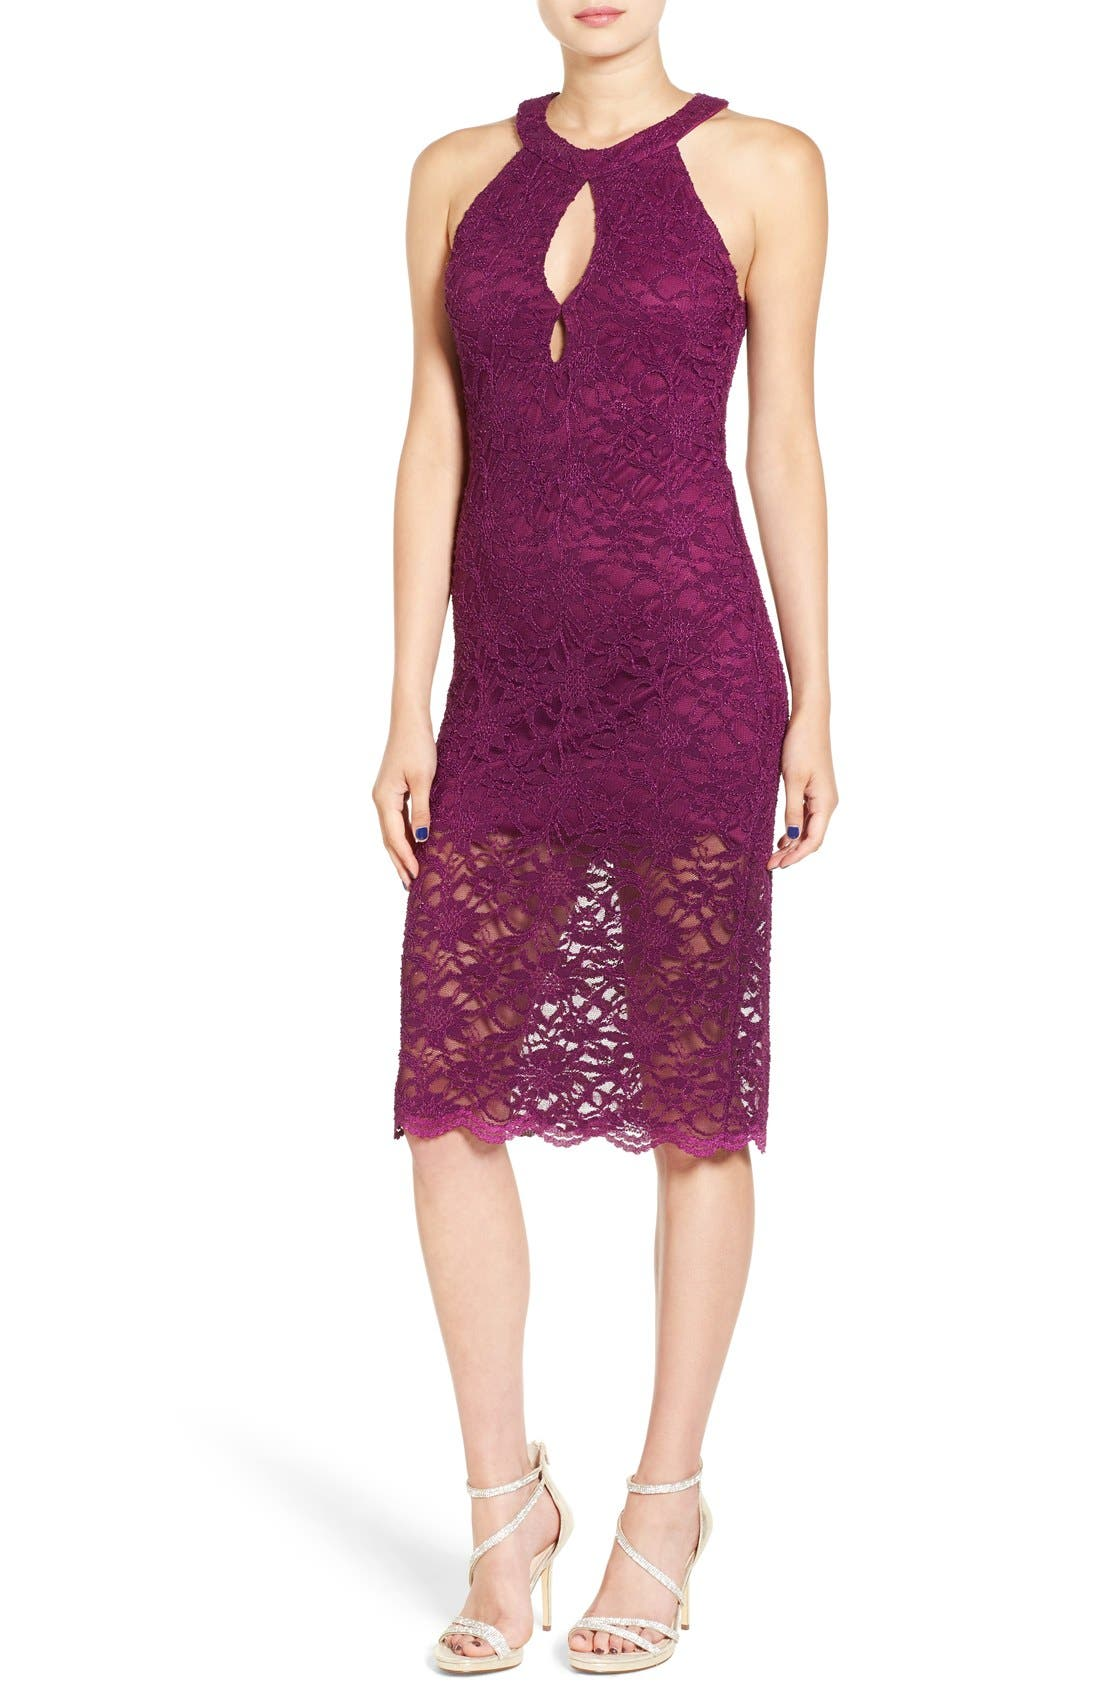 Alternate Image 1 Selected - Jump Apparel Lace Midi Body-Con Dress